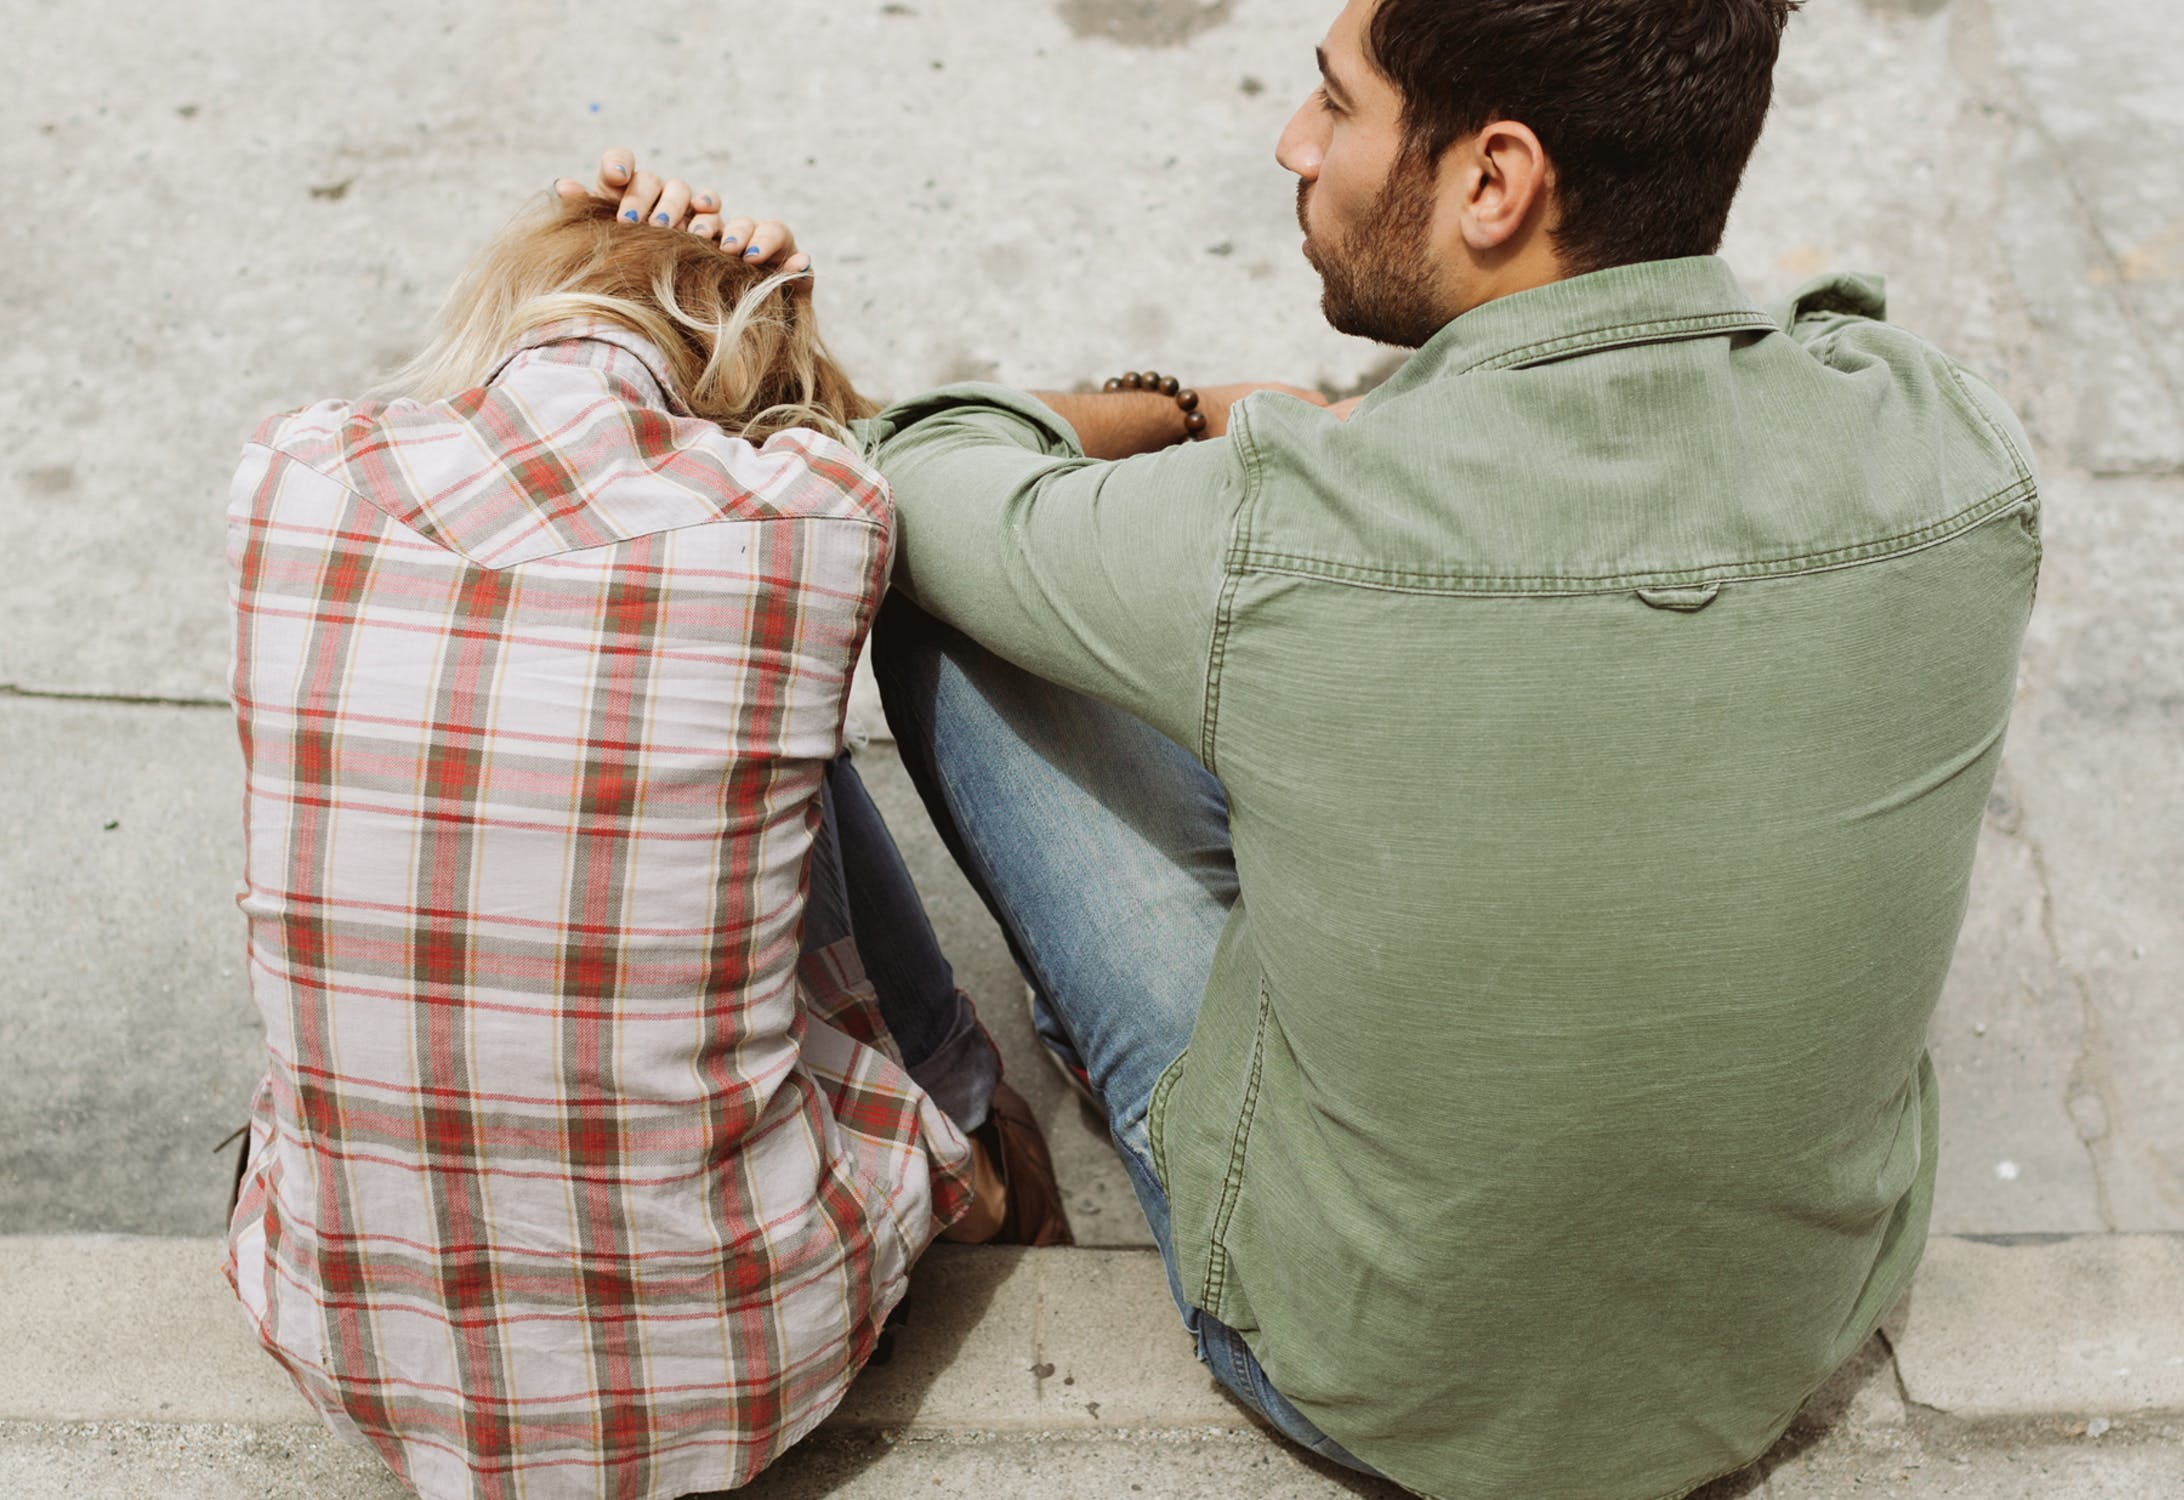 couple sitting on the sidewalk with the woman having her head down, argument, disagreements, breakups